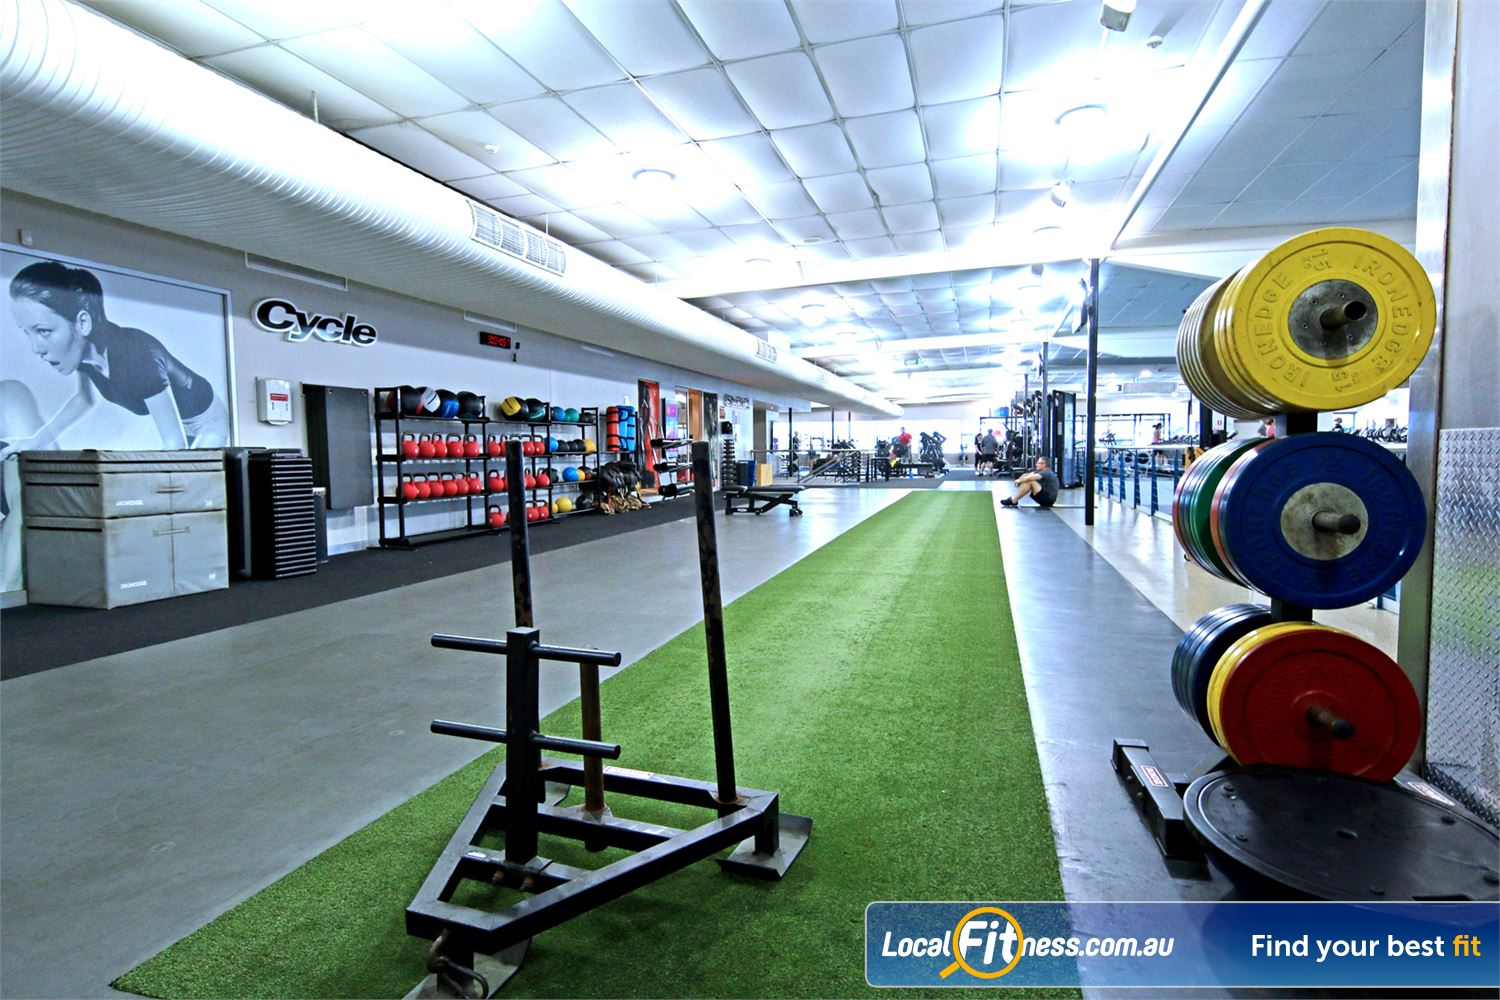 Fitness First Near Windsor The functional freestyle area with grass running/sled track.